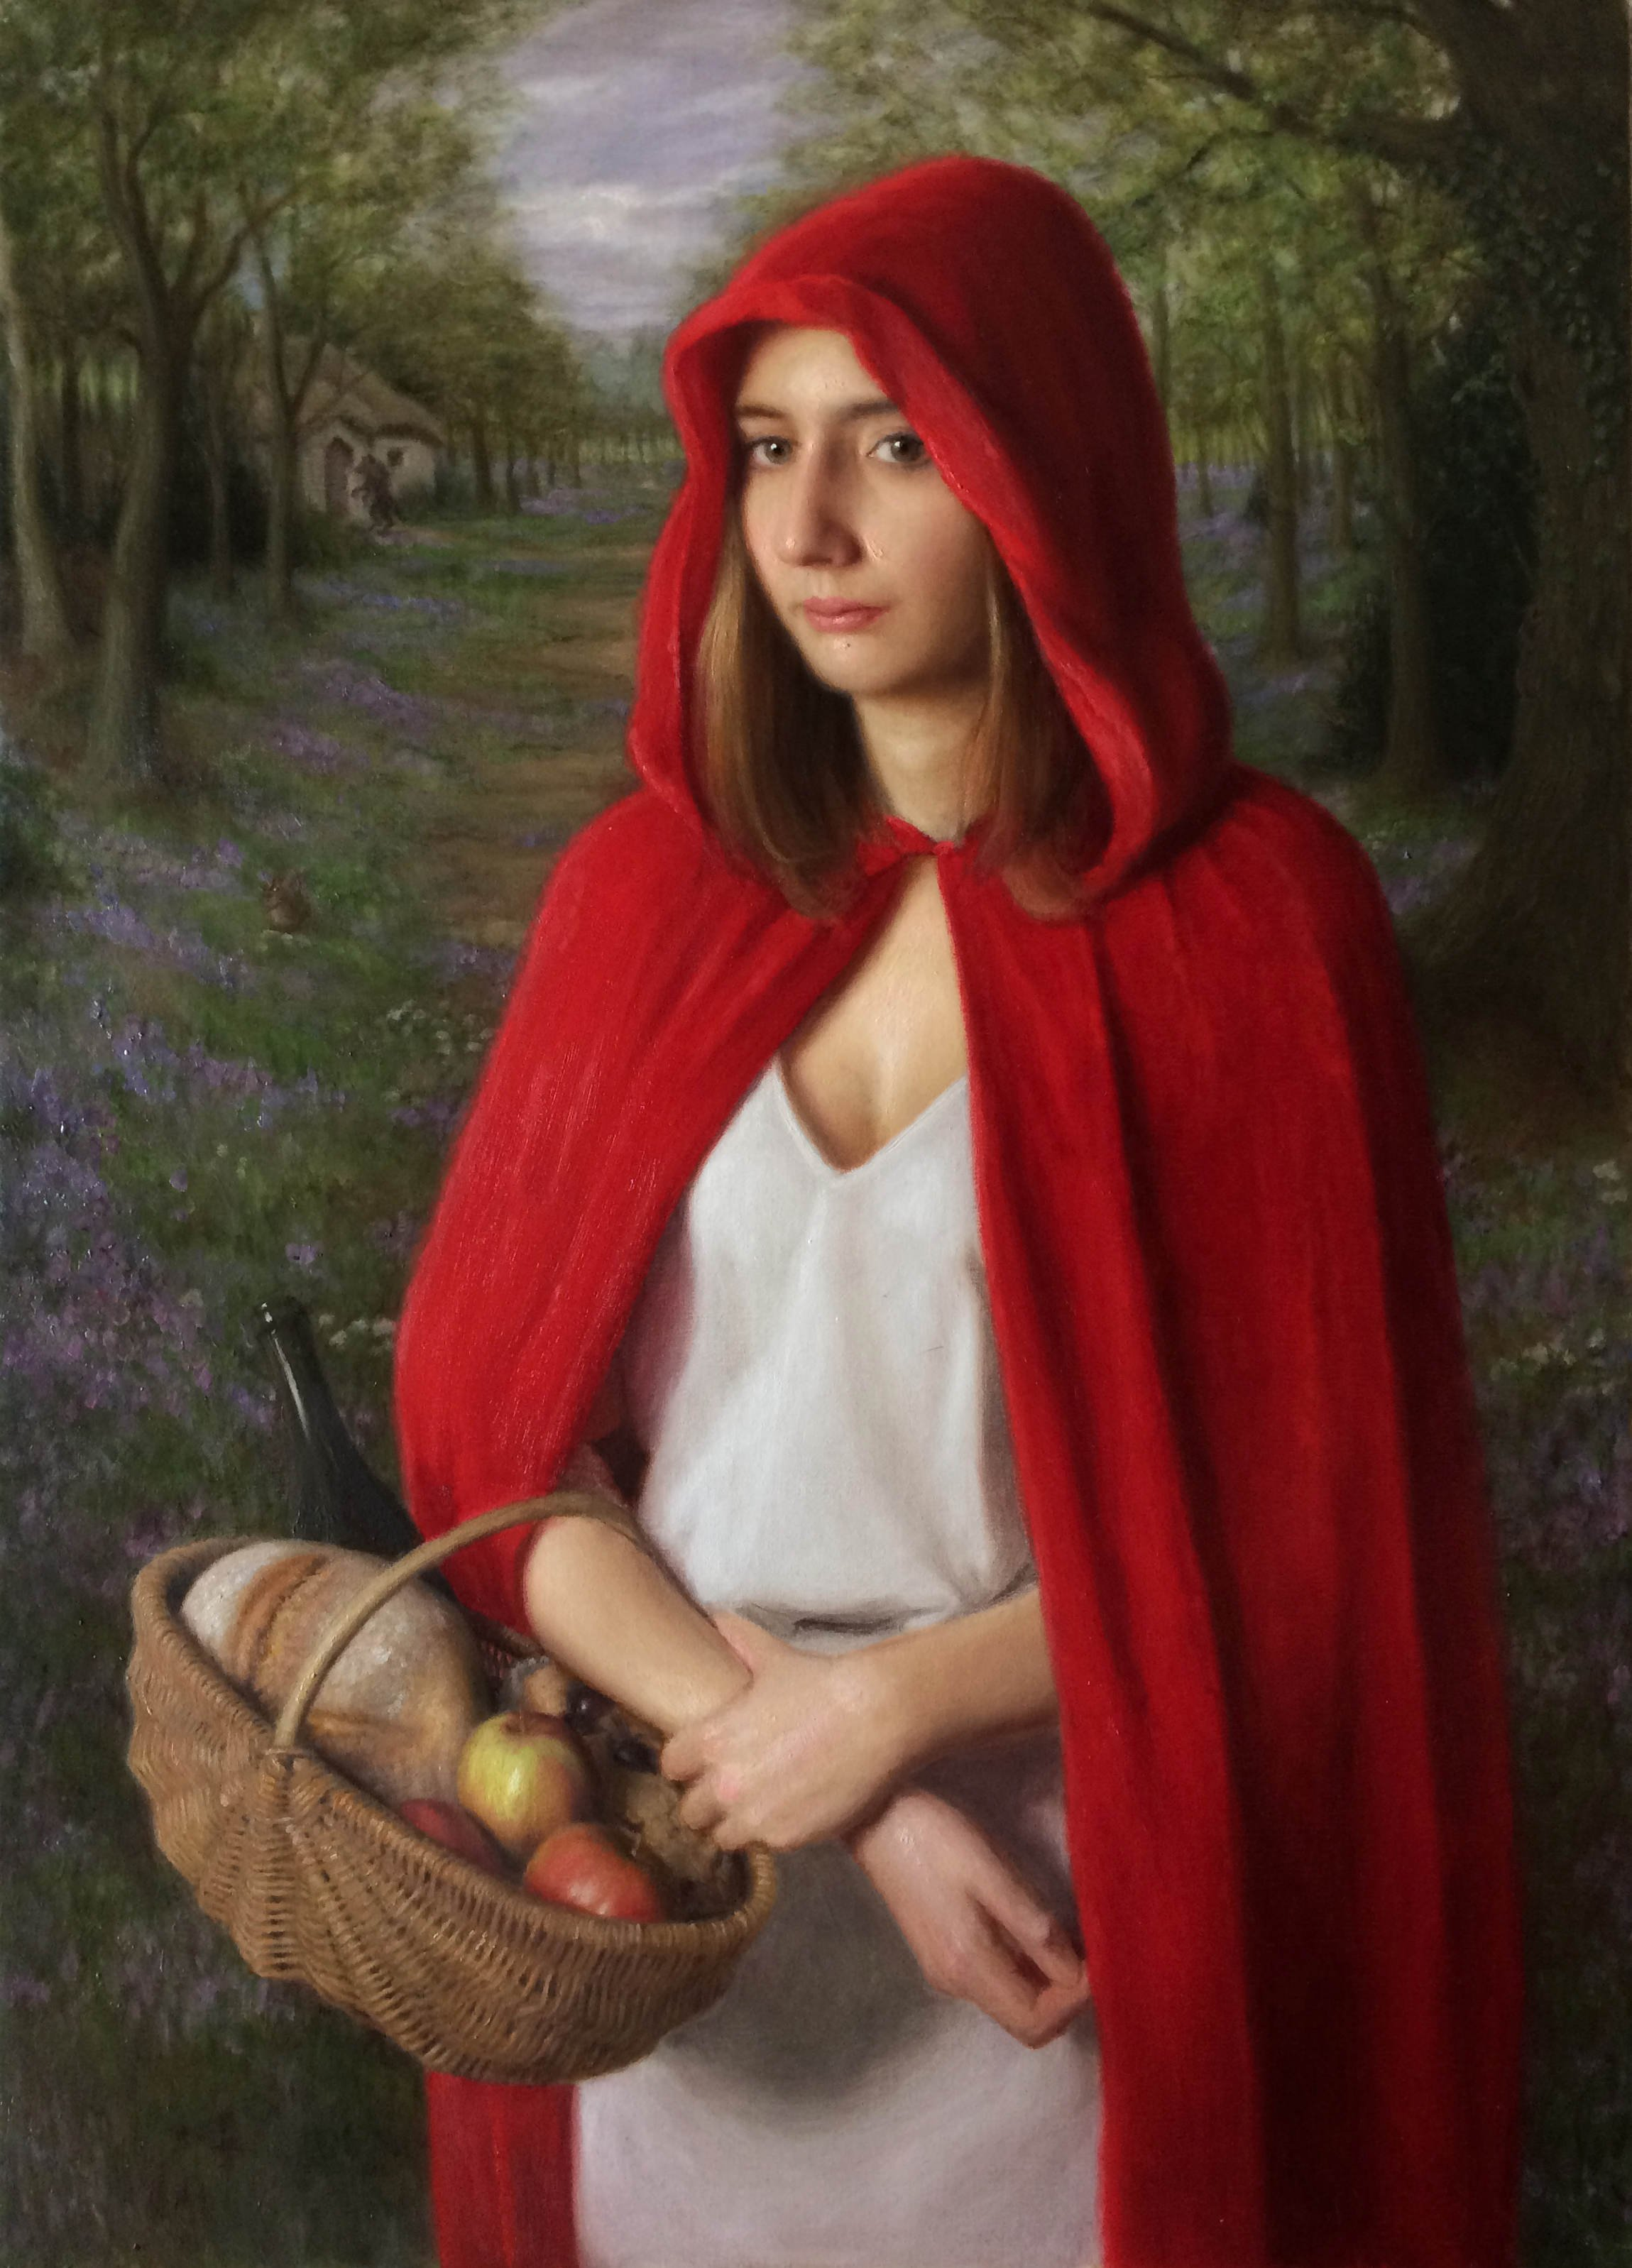 Amy as Red Riding Hood